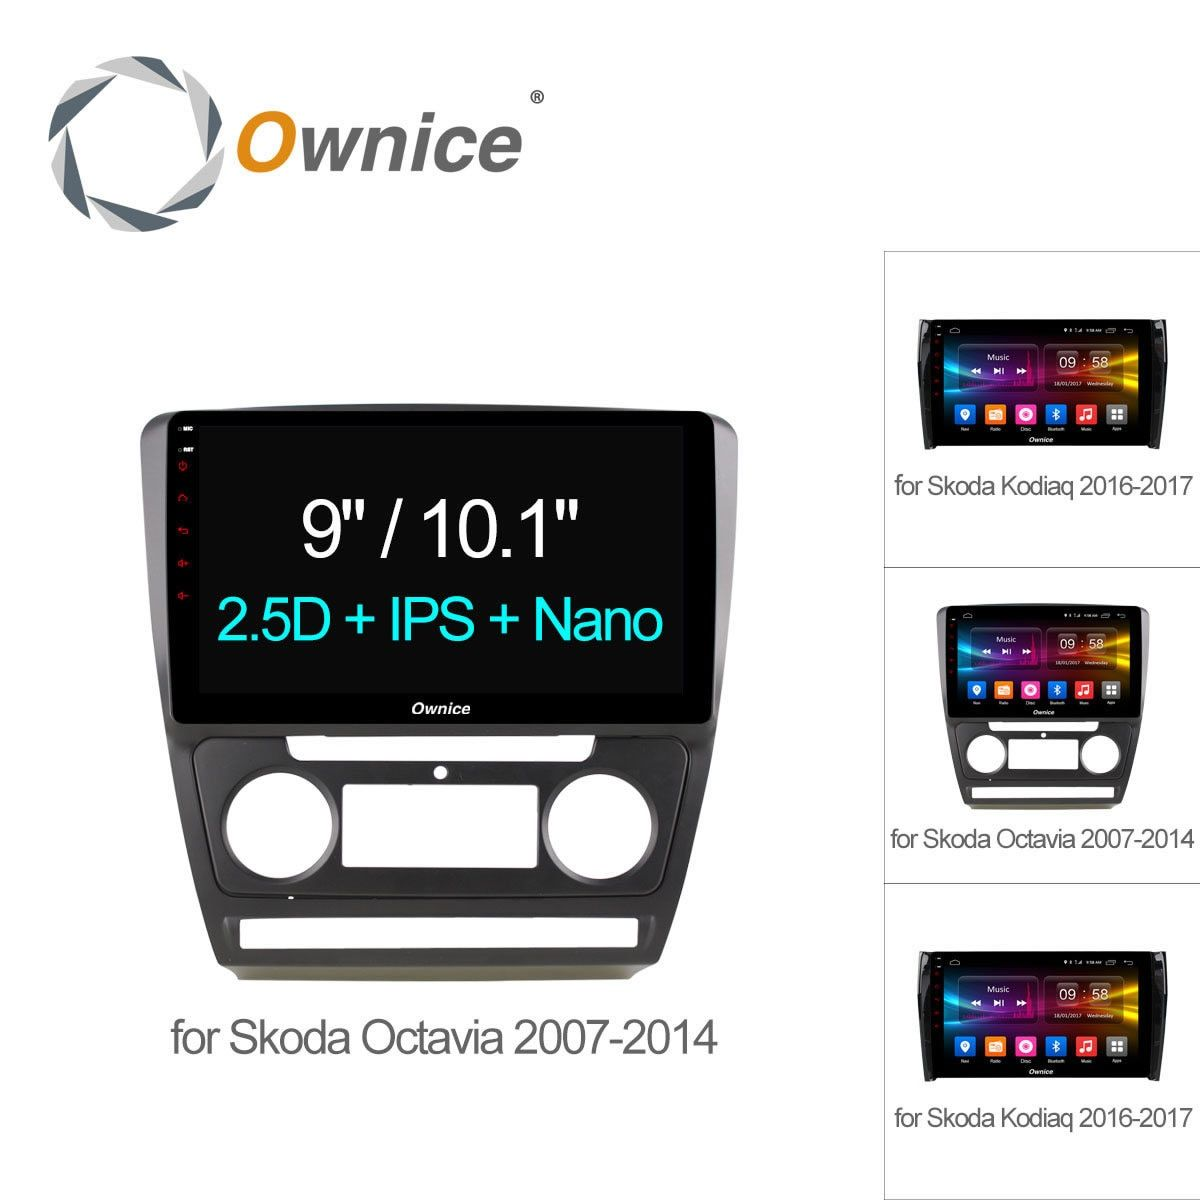 Ownice C500+ 10.1 Octa Octa core Android 6.0 Car DVD Player GPS Navigation for Skoda Octavia 2007 2008 KODIAQ 4G SIM TPMS DAB+